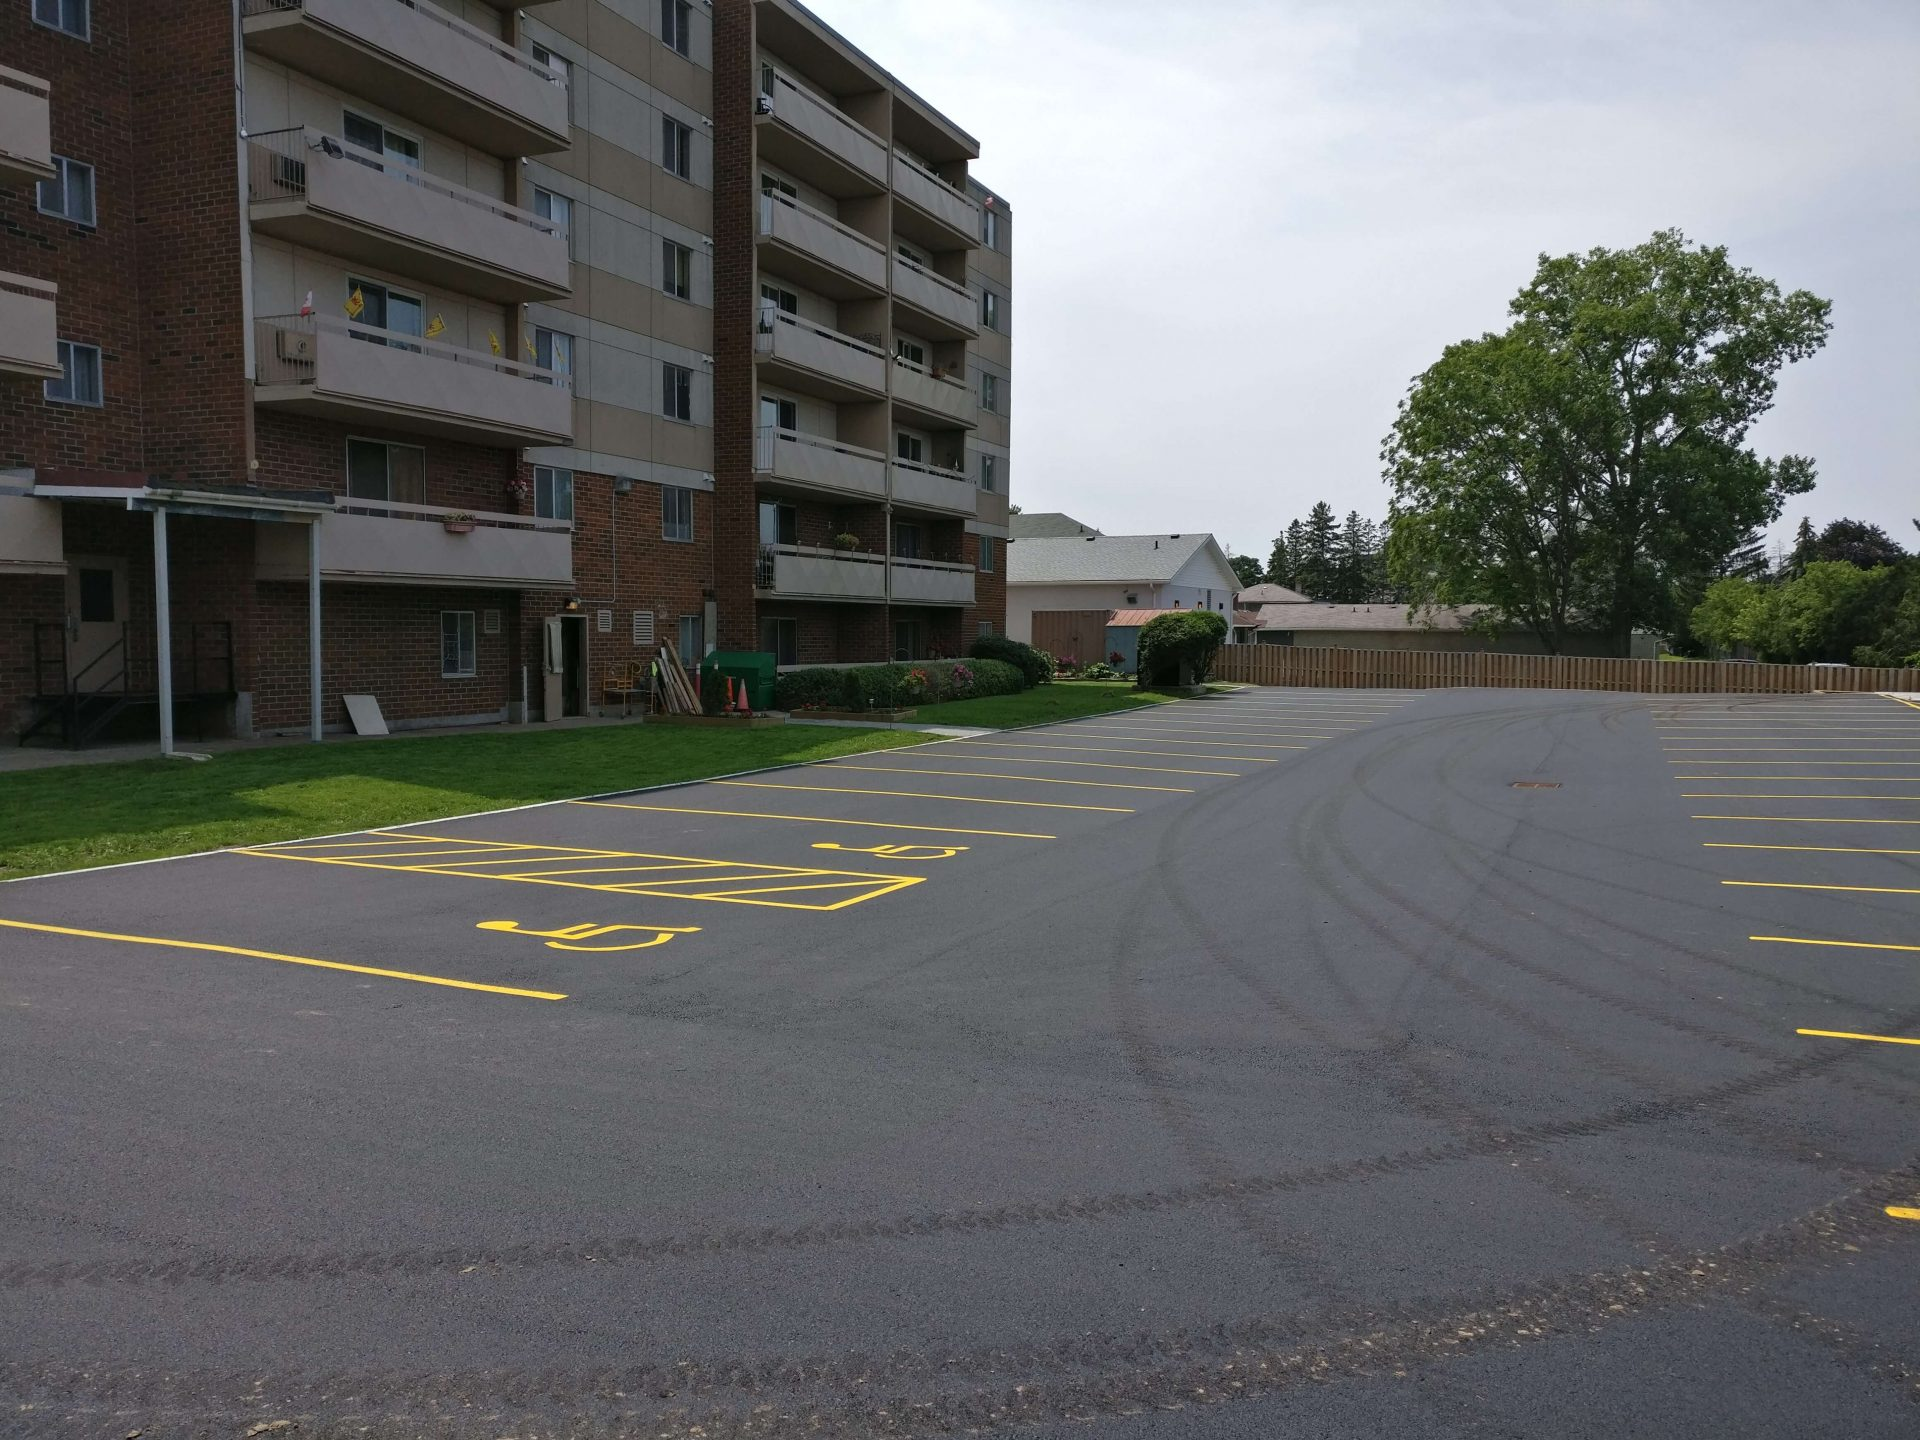 Paved parking lot for apartment building